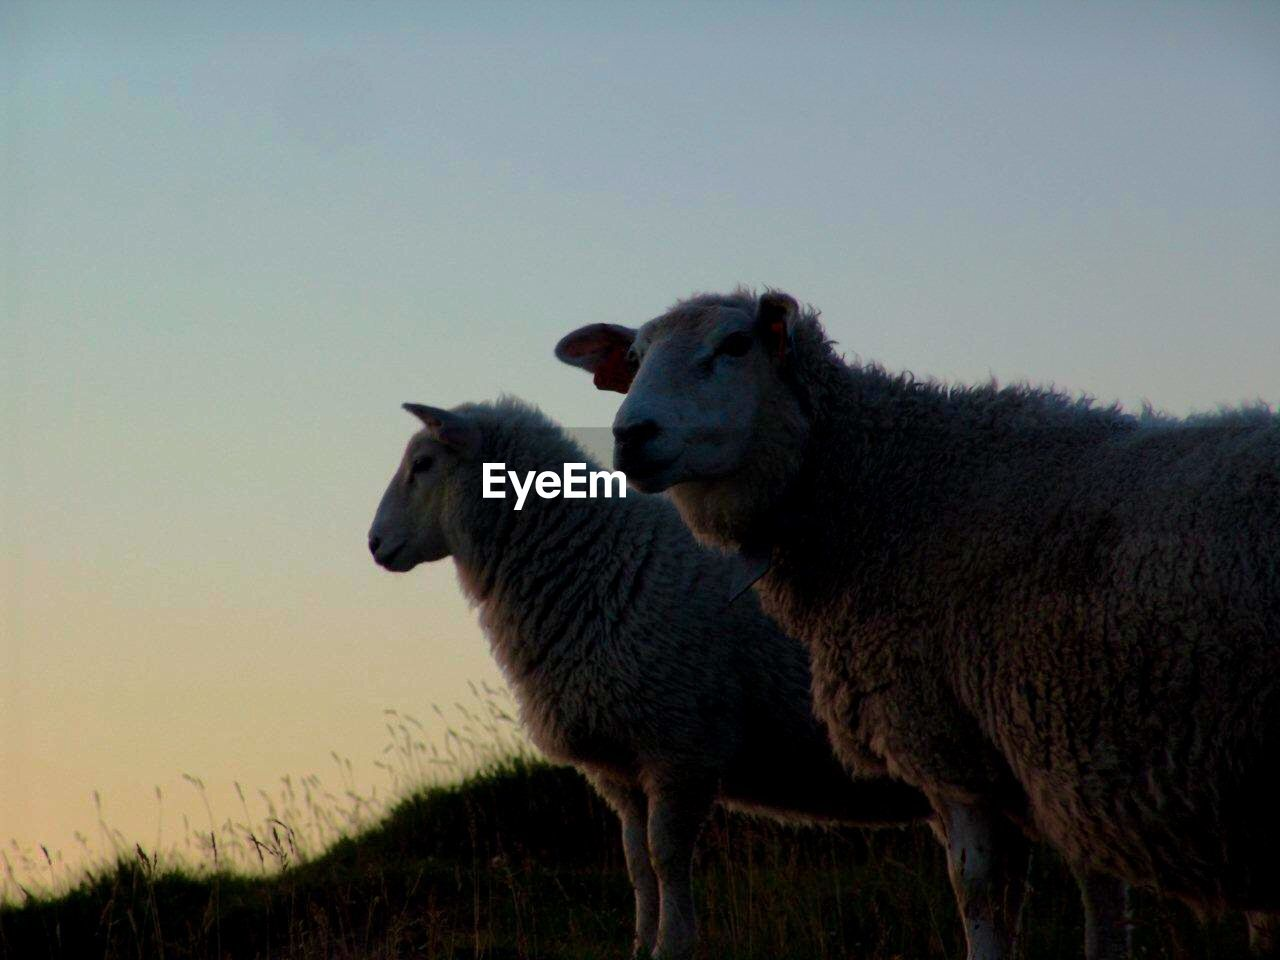 Sheep on grassy field against sky during sunset